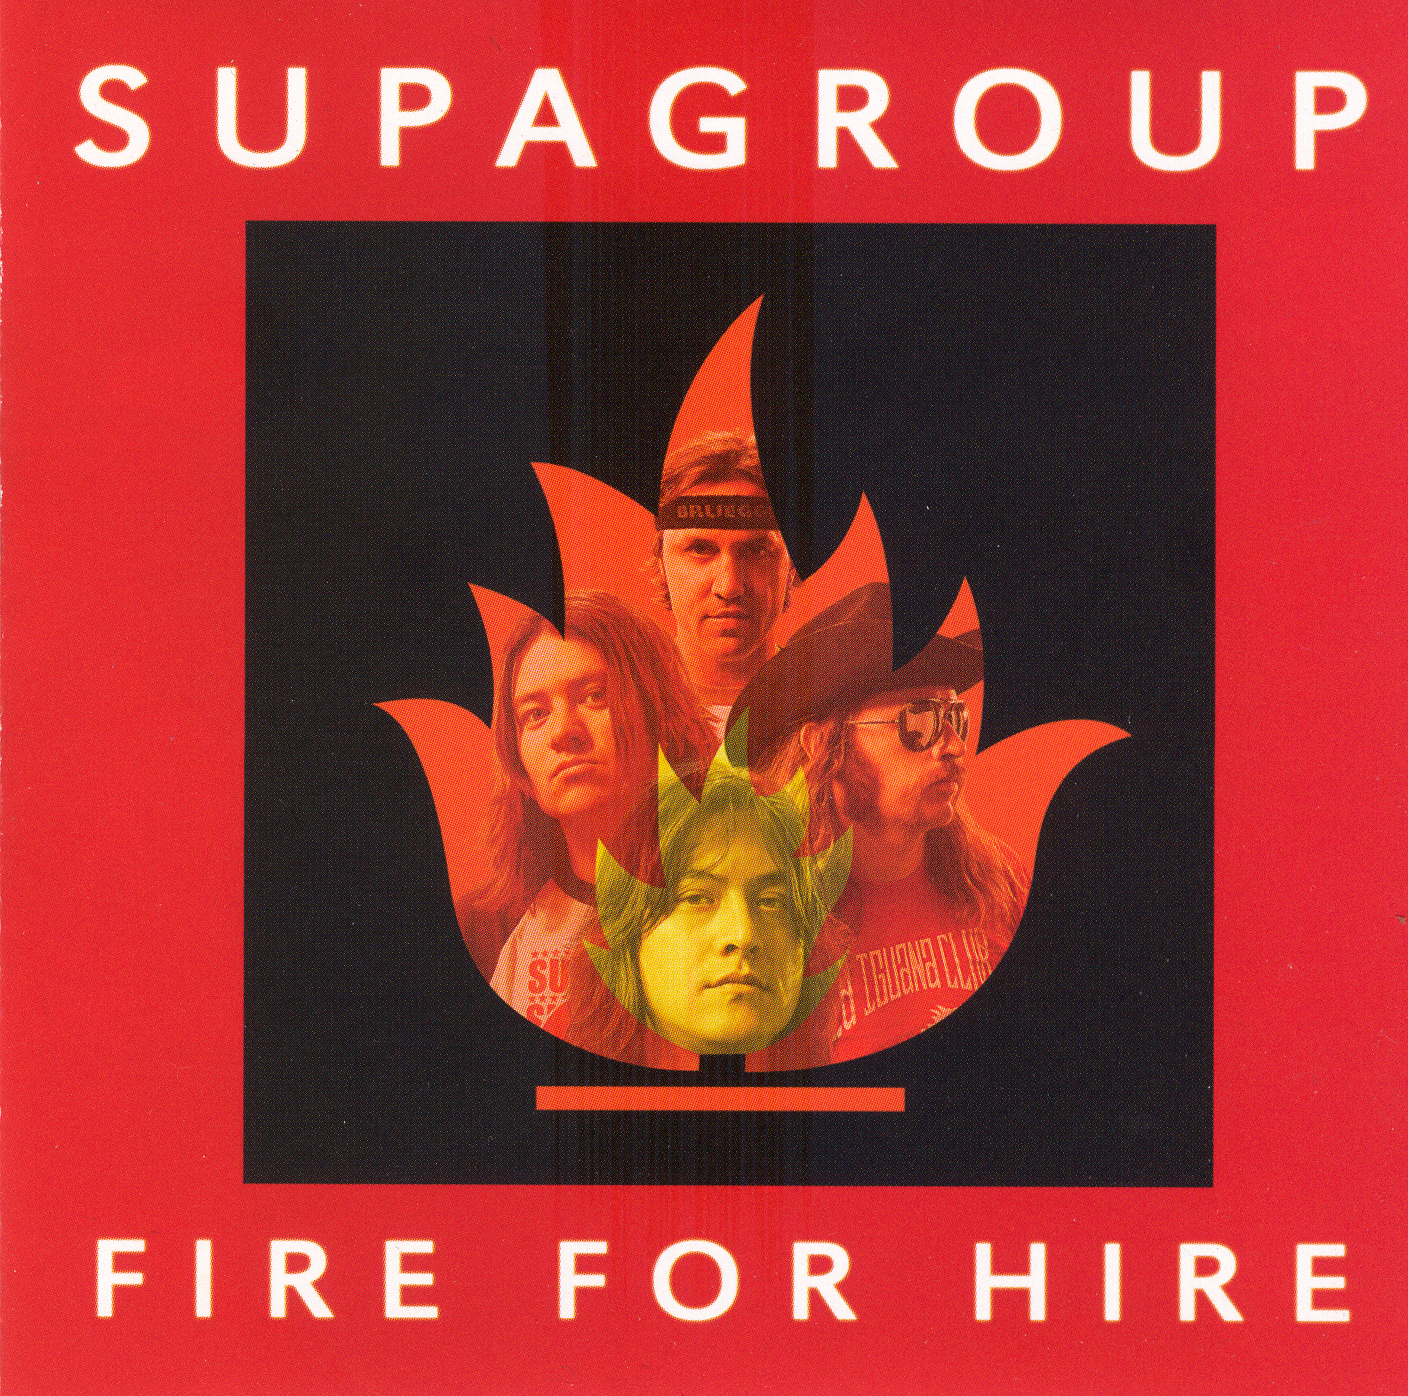 fire for hire.jpg